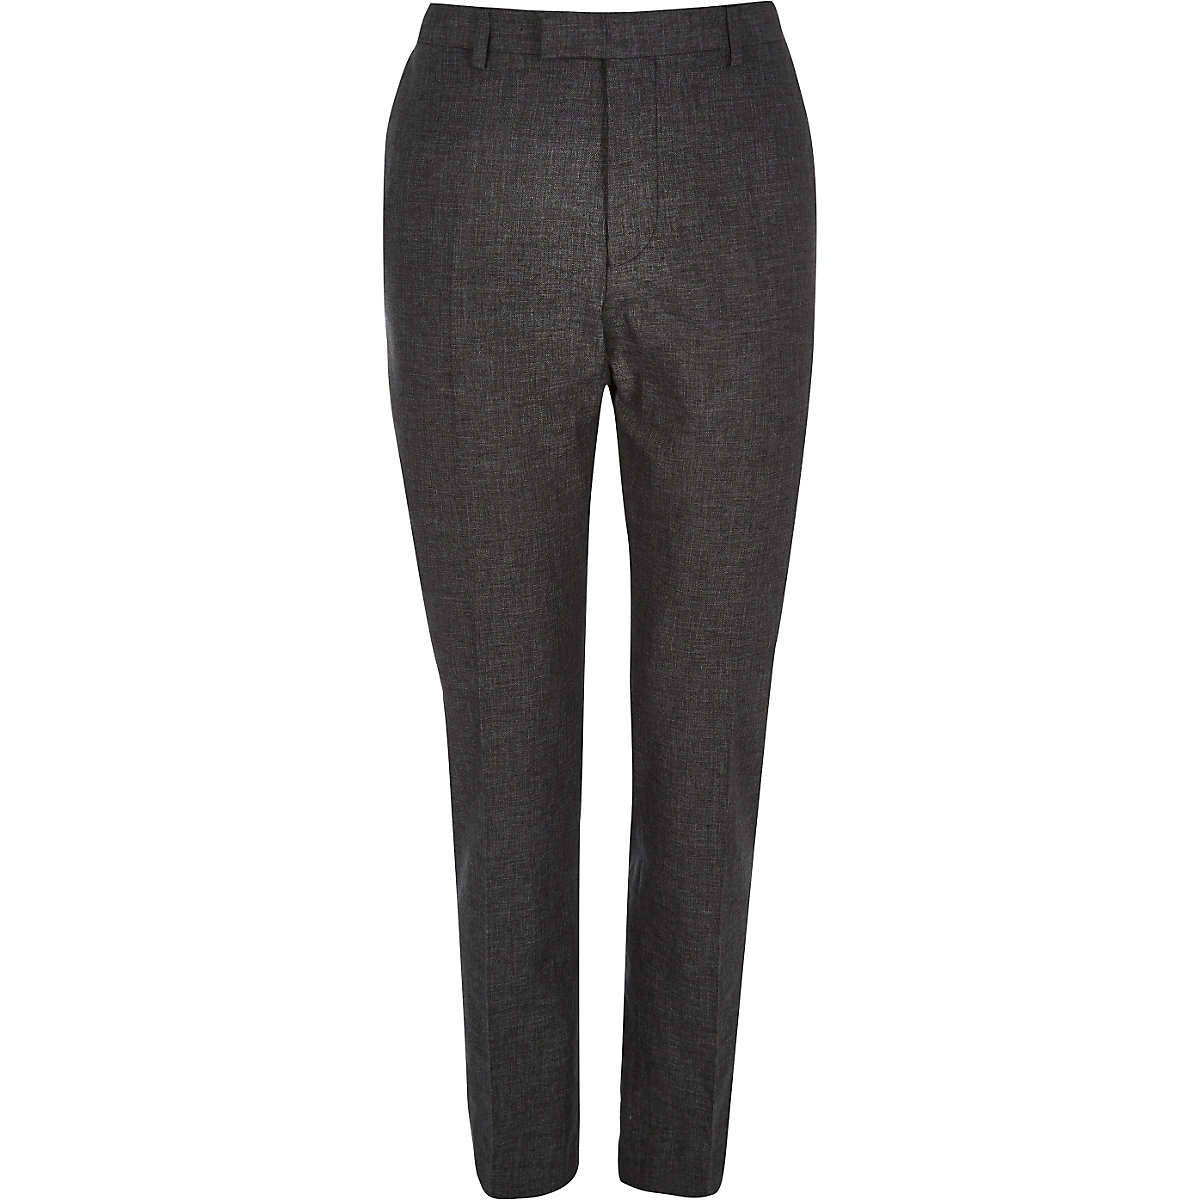 Black linen slim fit suit trousers